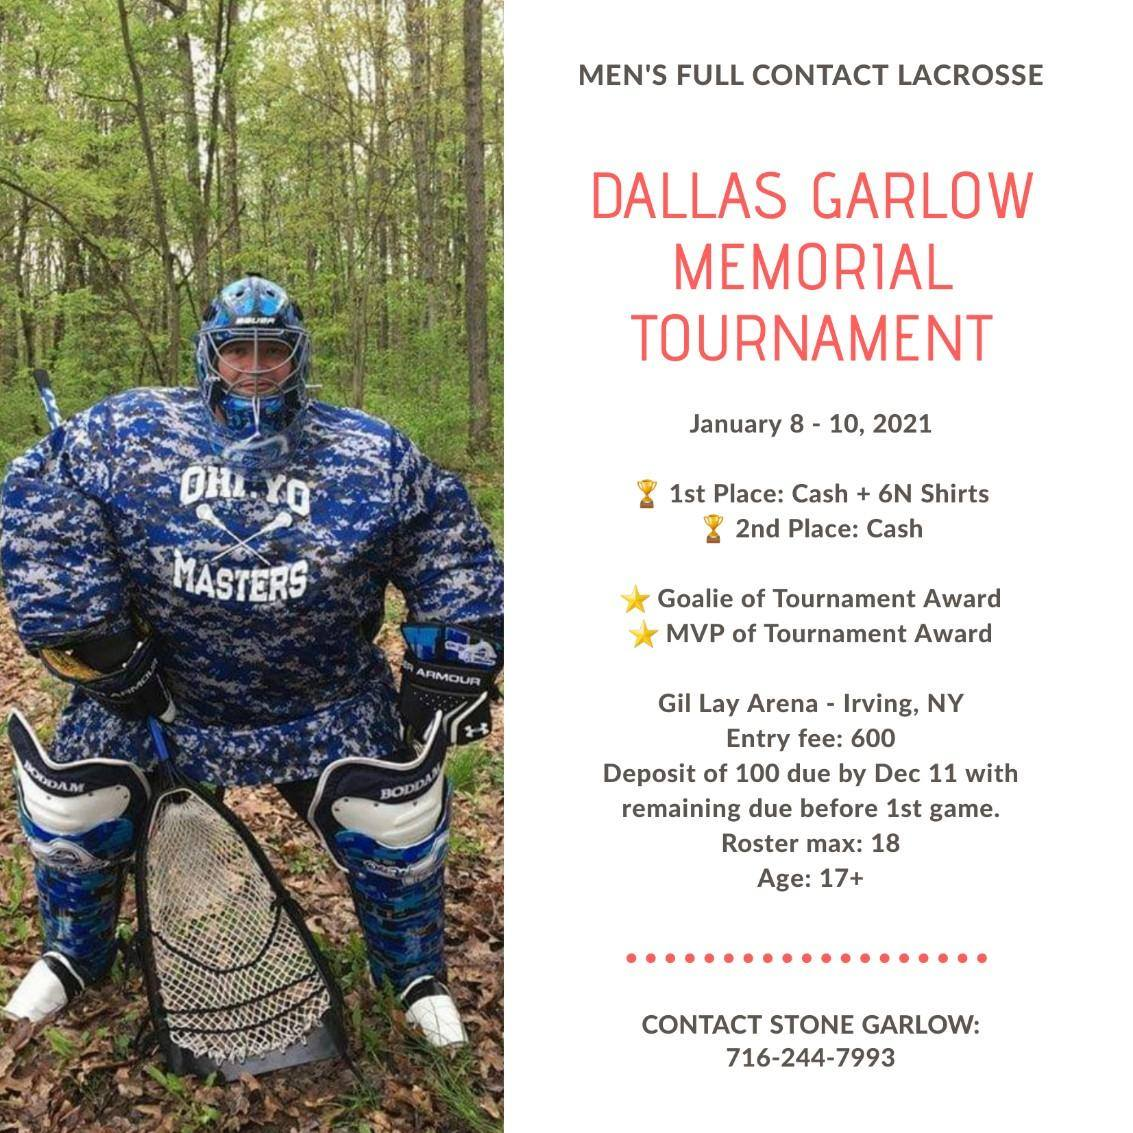 Dallas Garlow Memorial Tournament